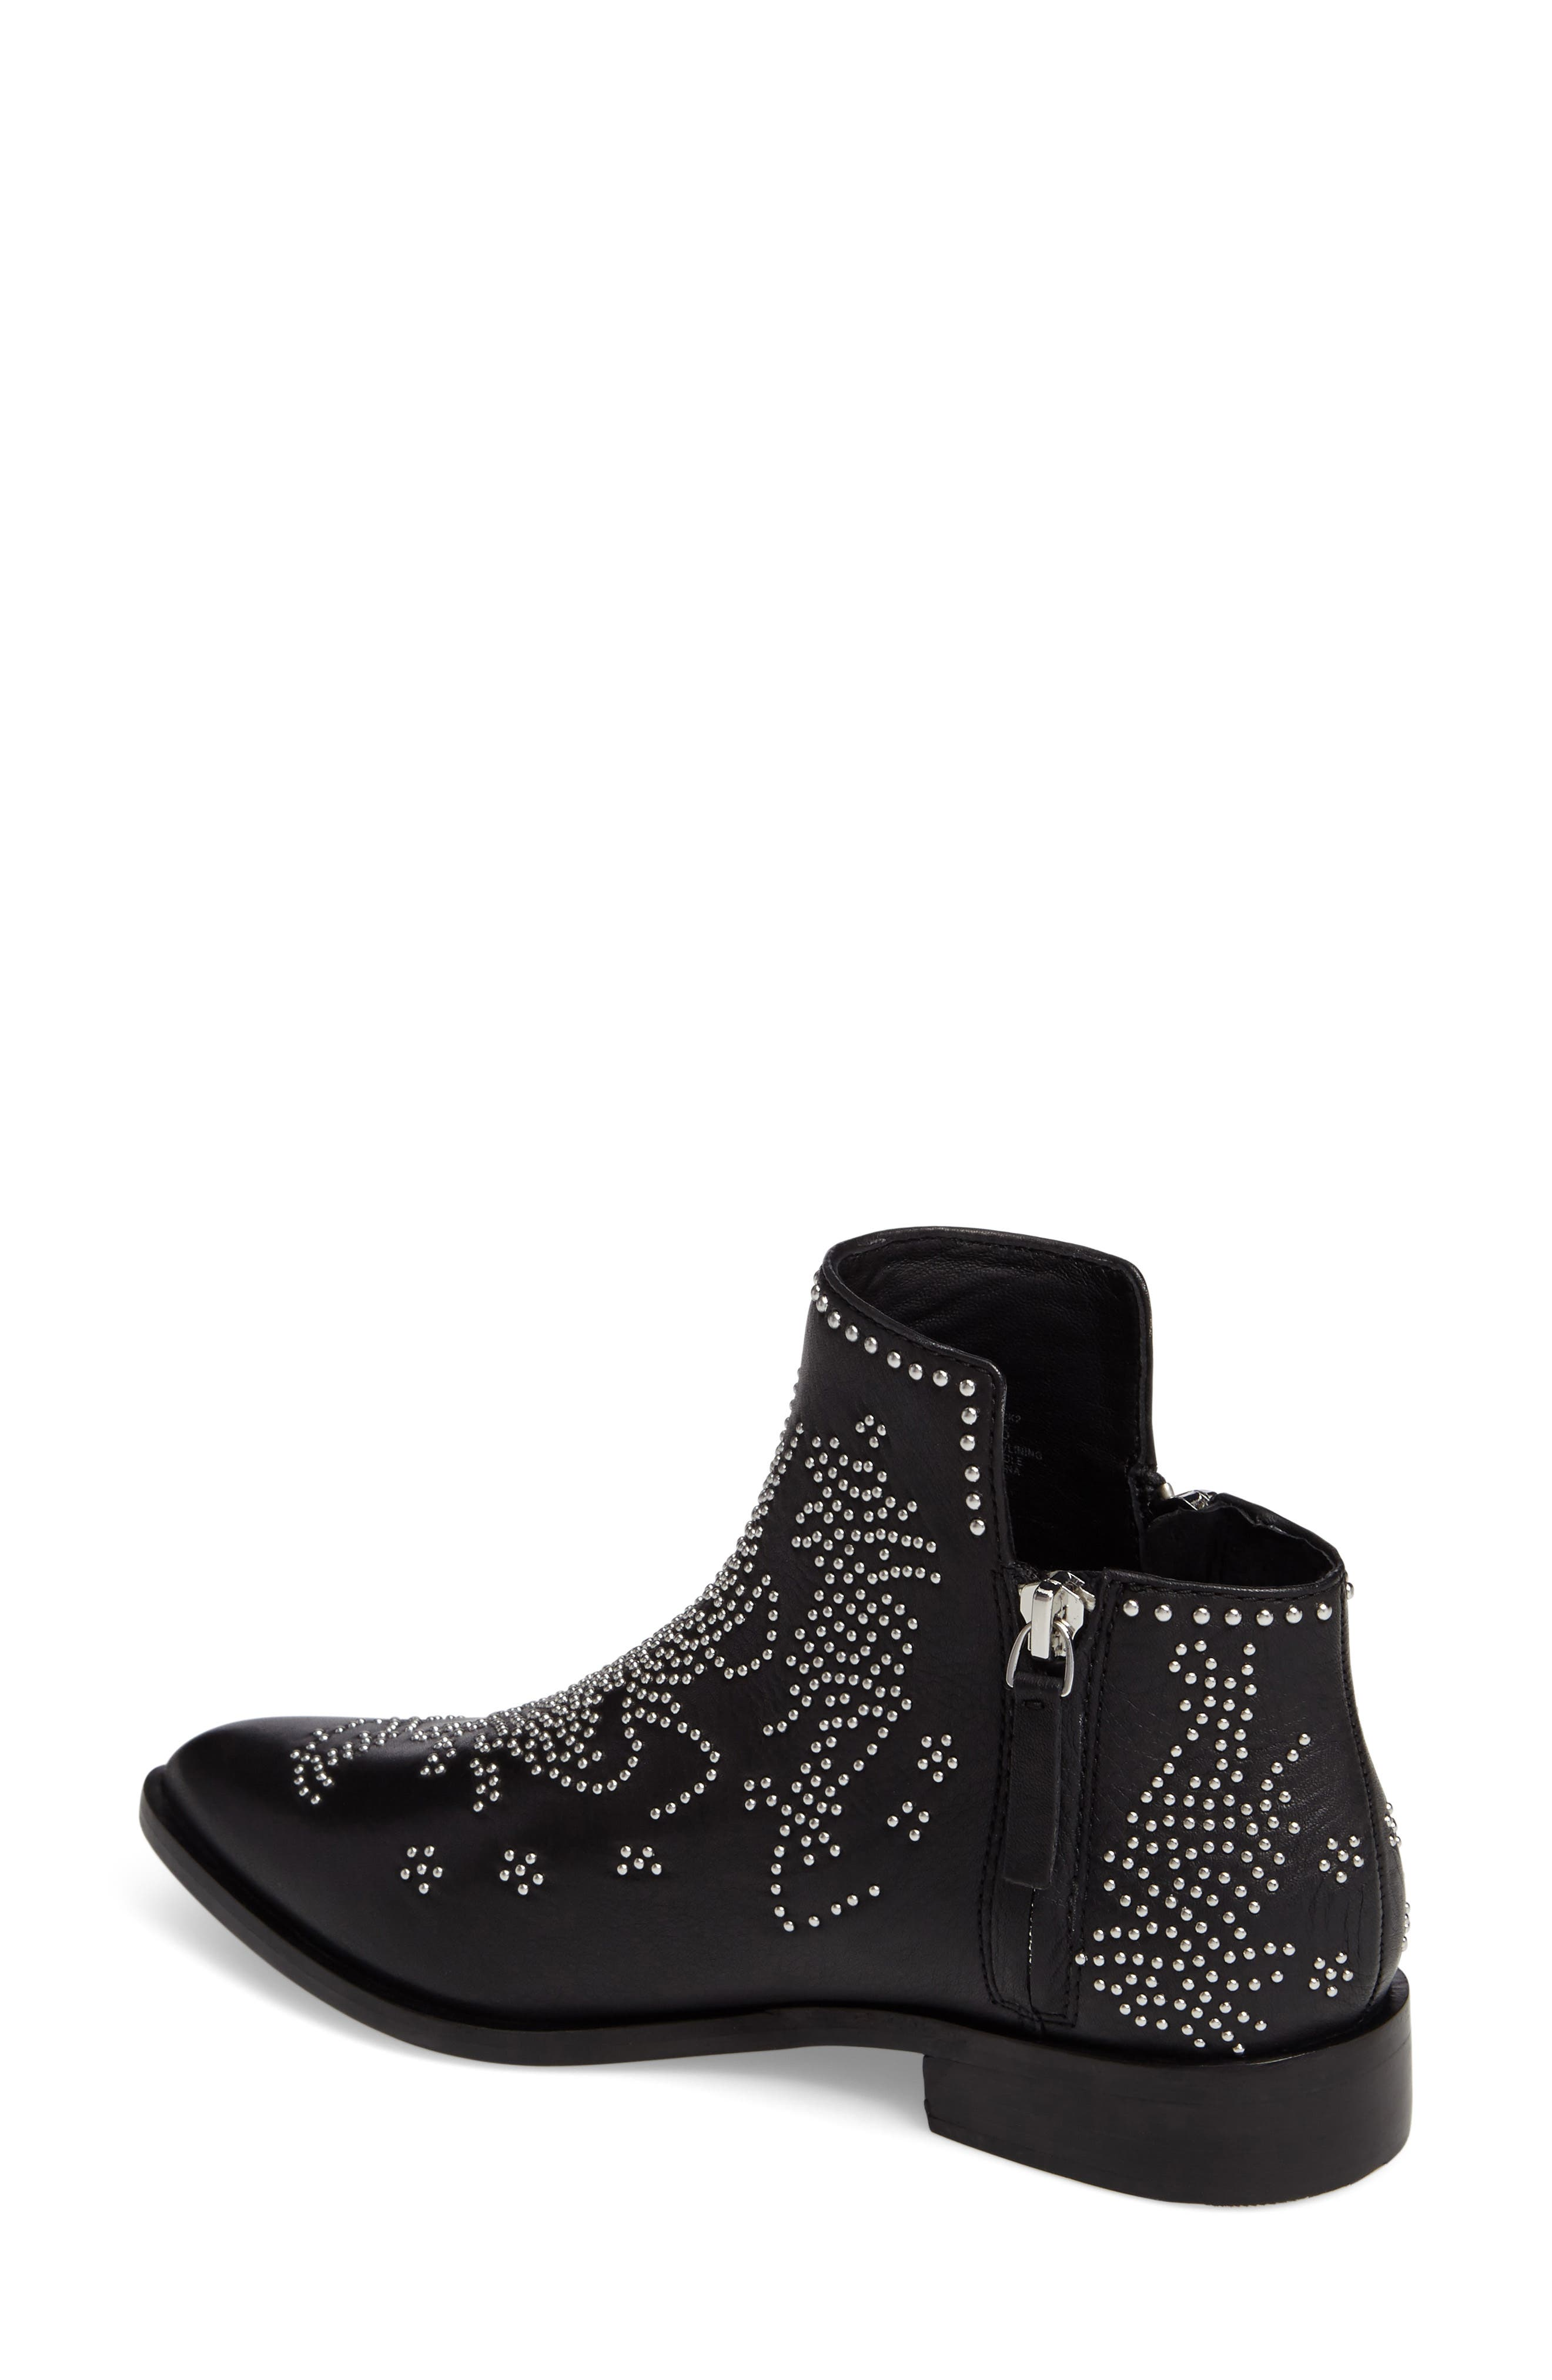 Callback2 Studded Bootie,                             Alternate thumbnail 2, color,                             001